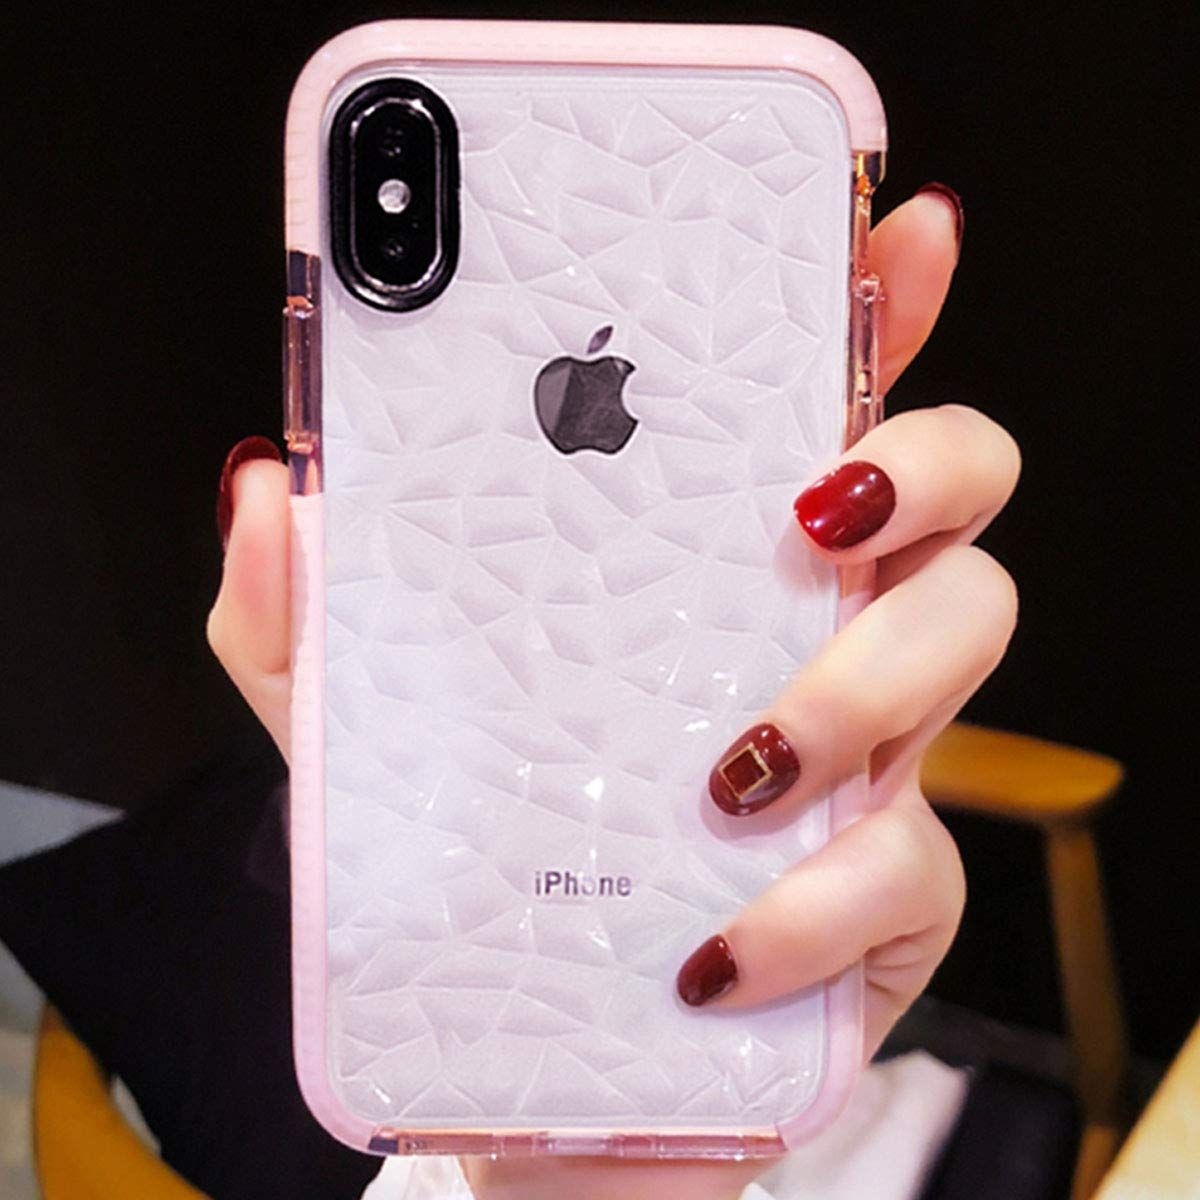 Compatible For Iphone X Xs Case Girls Women Cute Clear Cover With Diamond Pattern Design Girly Phone Cases Iphone Pink Phone Cases